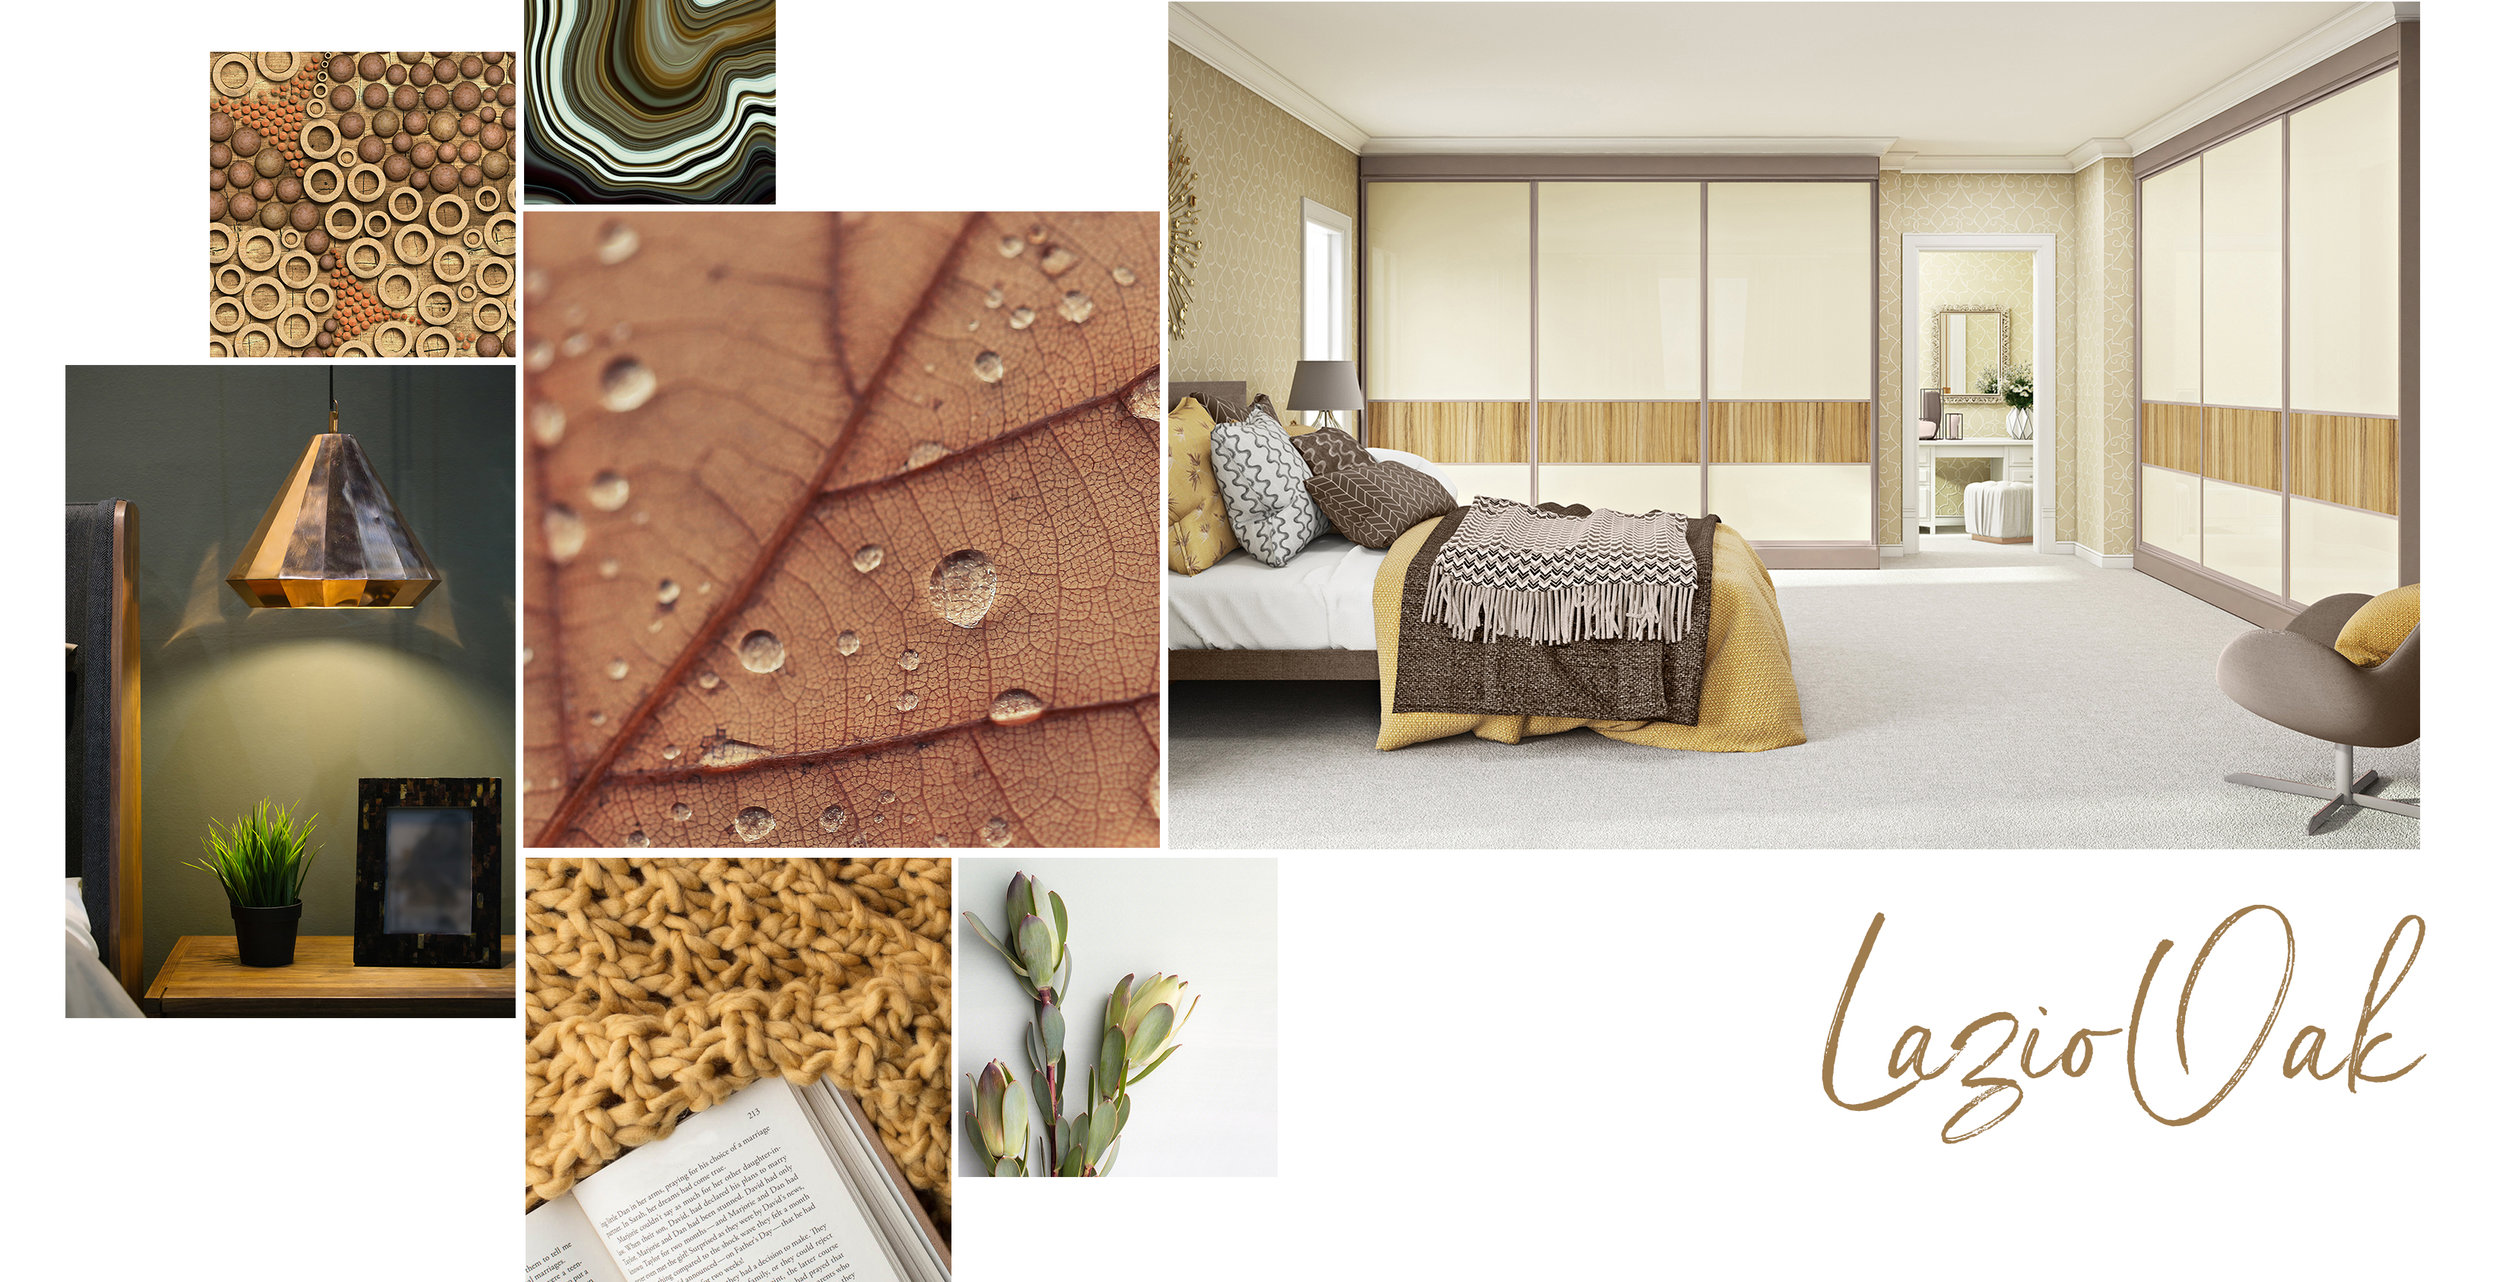 'Lazio Oak' is a perfect palette for any time of the year, but its tones are definitely reminiscent of Autumnal shades. A fusion of warm and earthy neutrals is mixed with rich ochres and olive hues, offering the perfect complement to timeless oak.